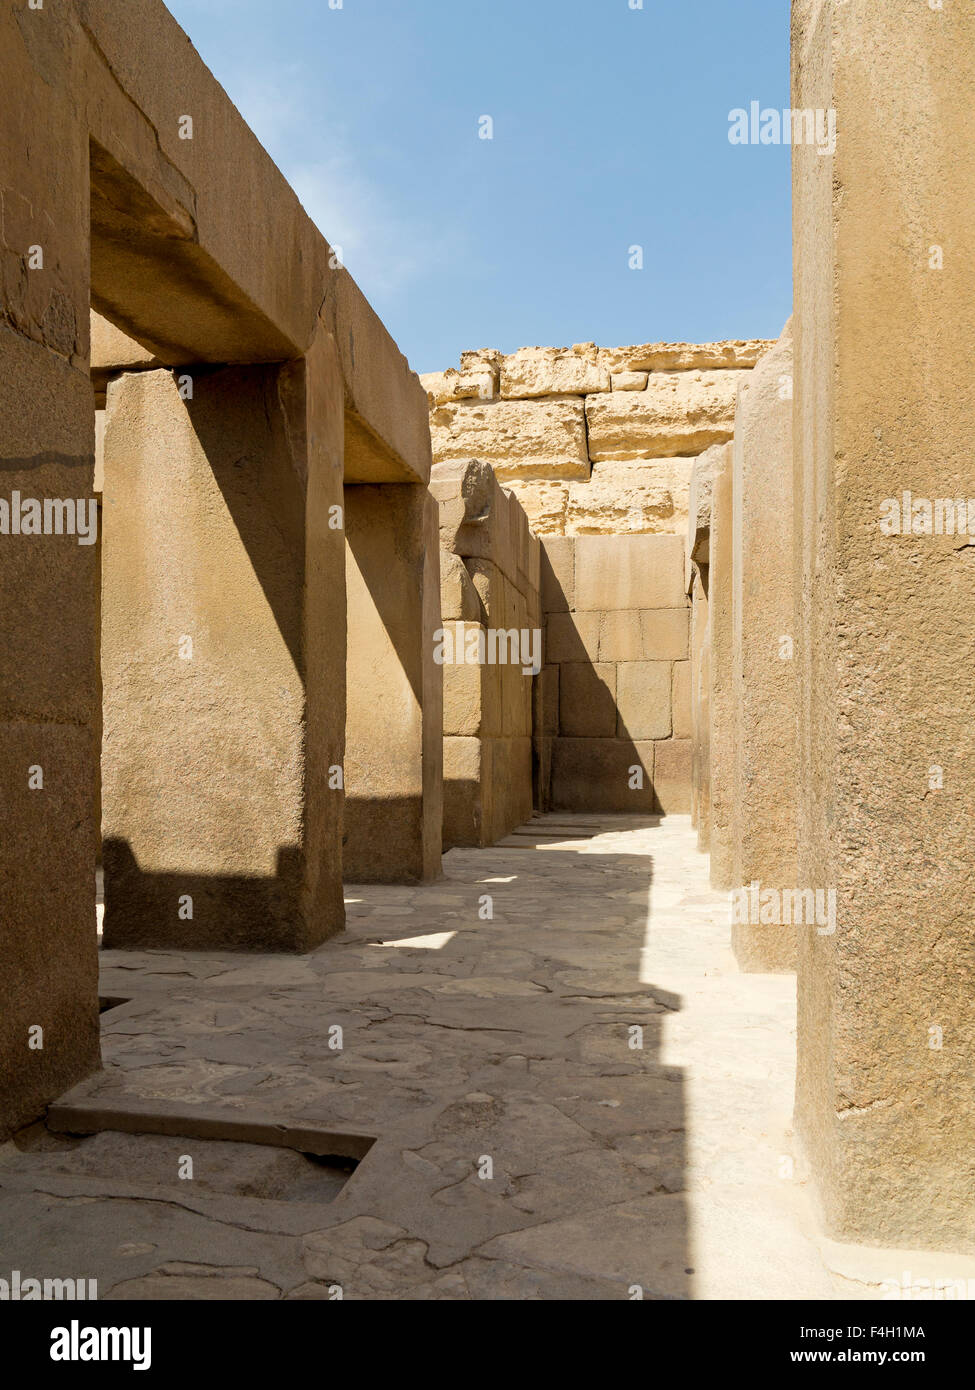 Roofless chamber in The Valley Temple of Pharaoh Khafre of the 4th Dynasty, Giza, near Cairo Egypt - Stock Image